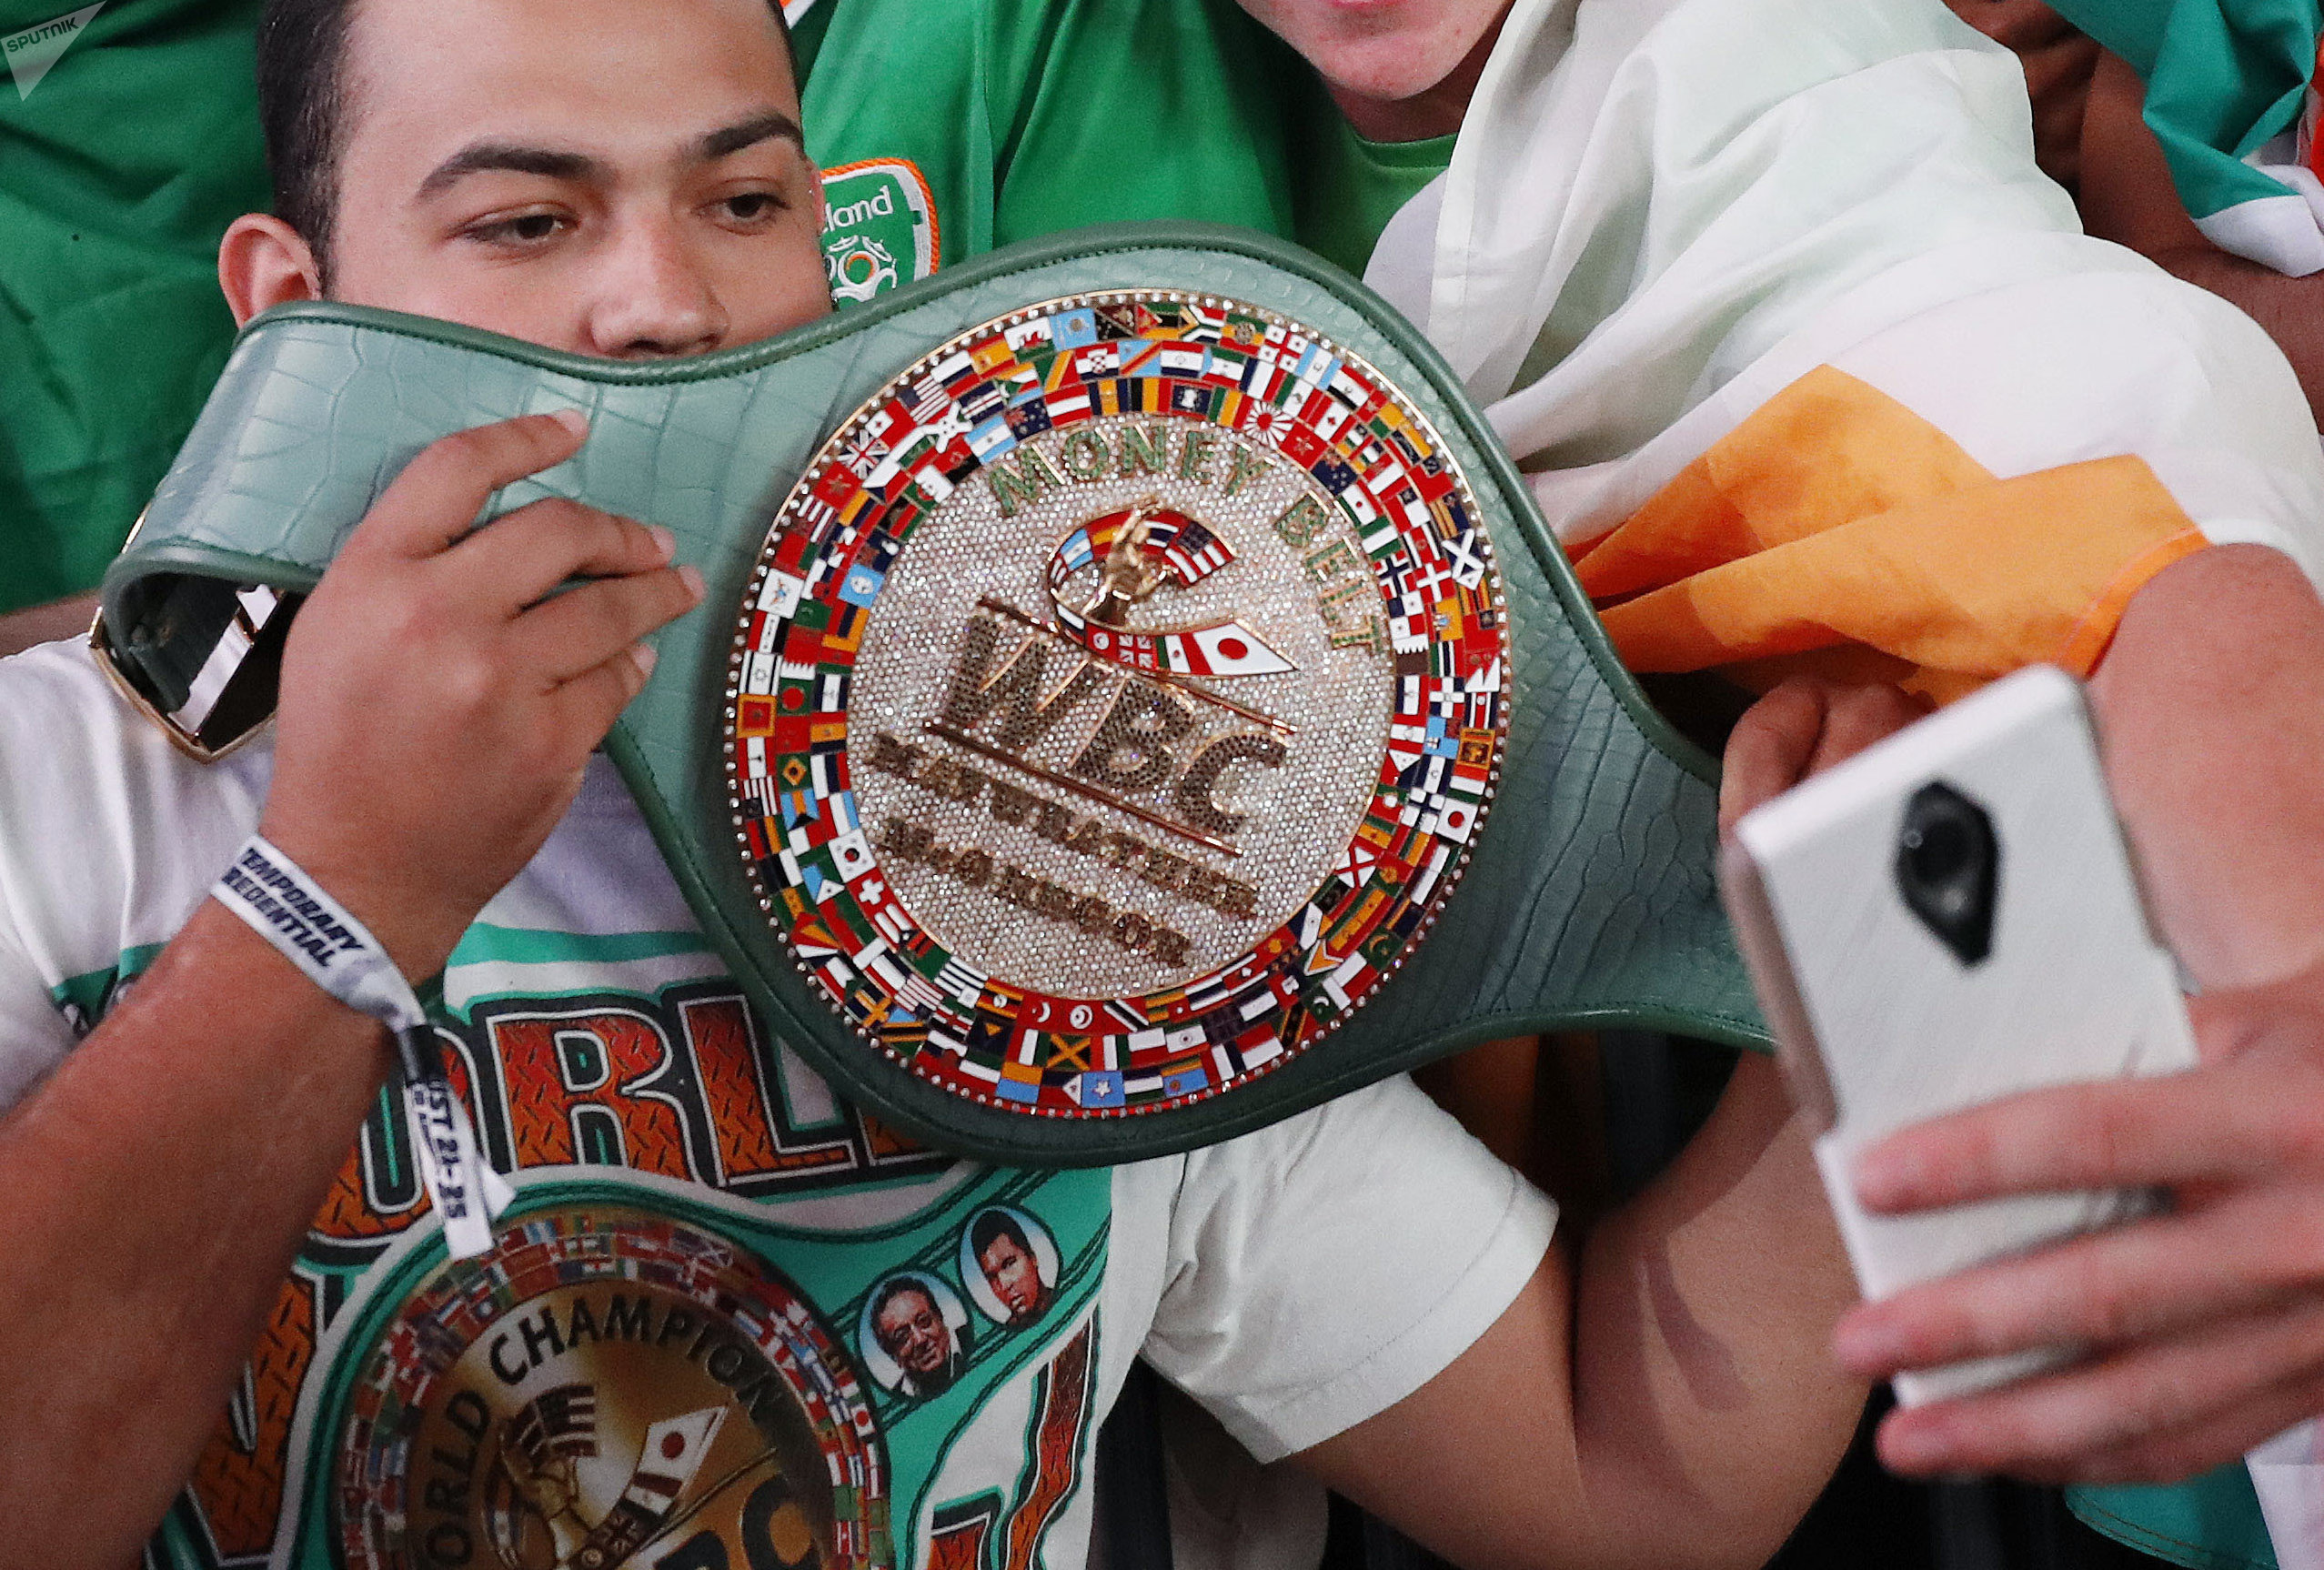 Fans take selfies with the WBC money belt before a weigh-in Friday, Aug. 25, 2017, in Las Vegas.